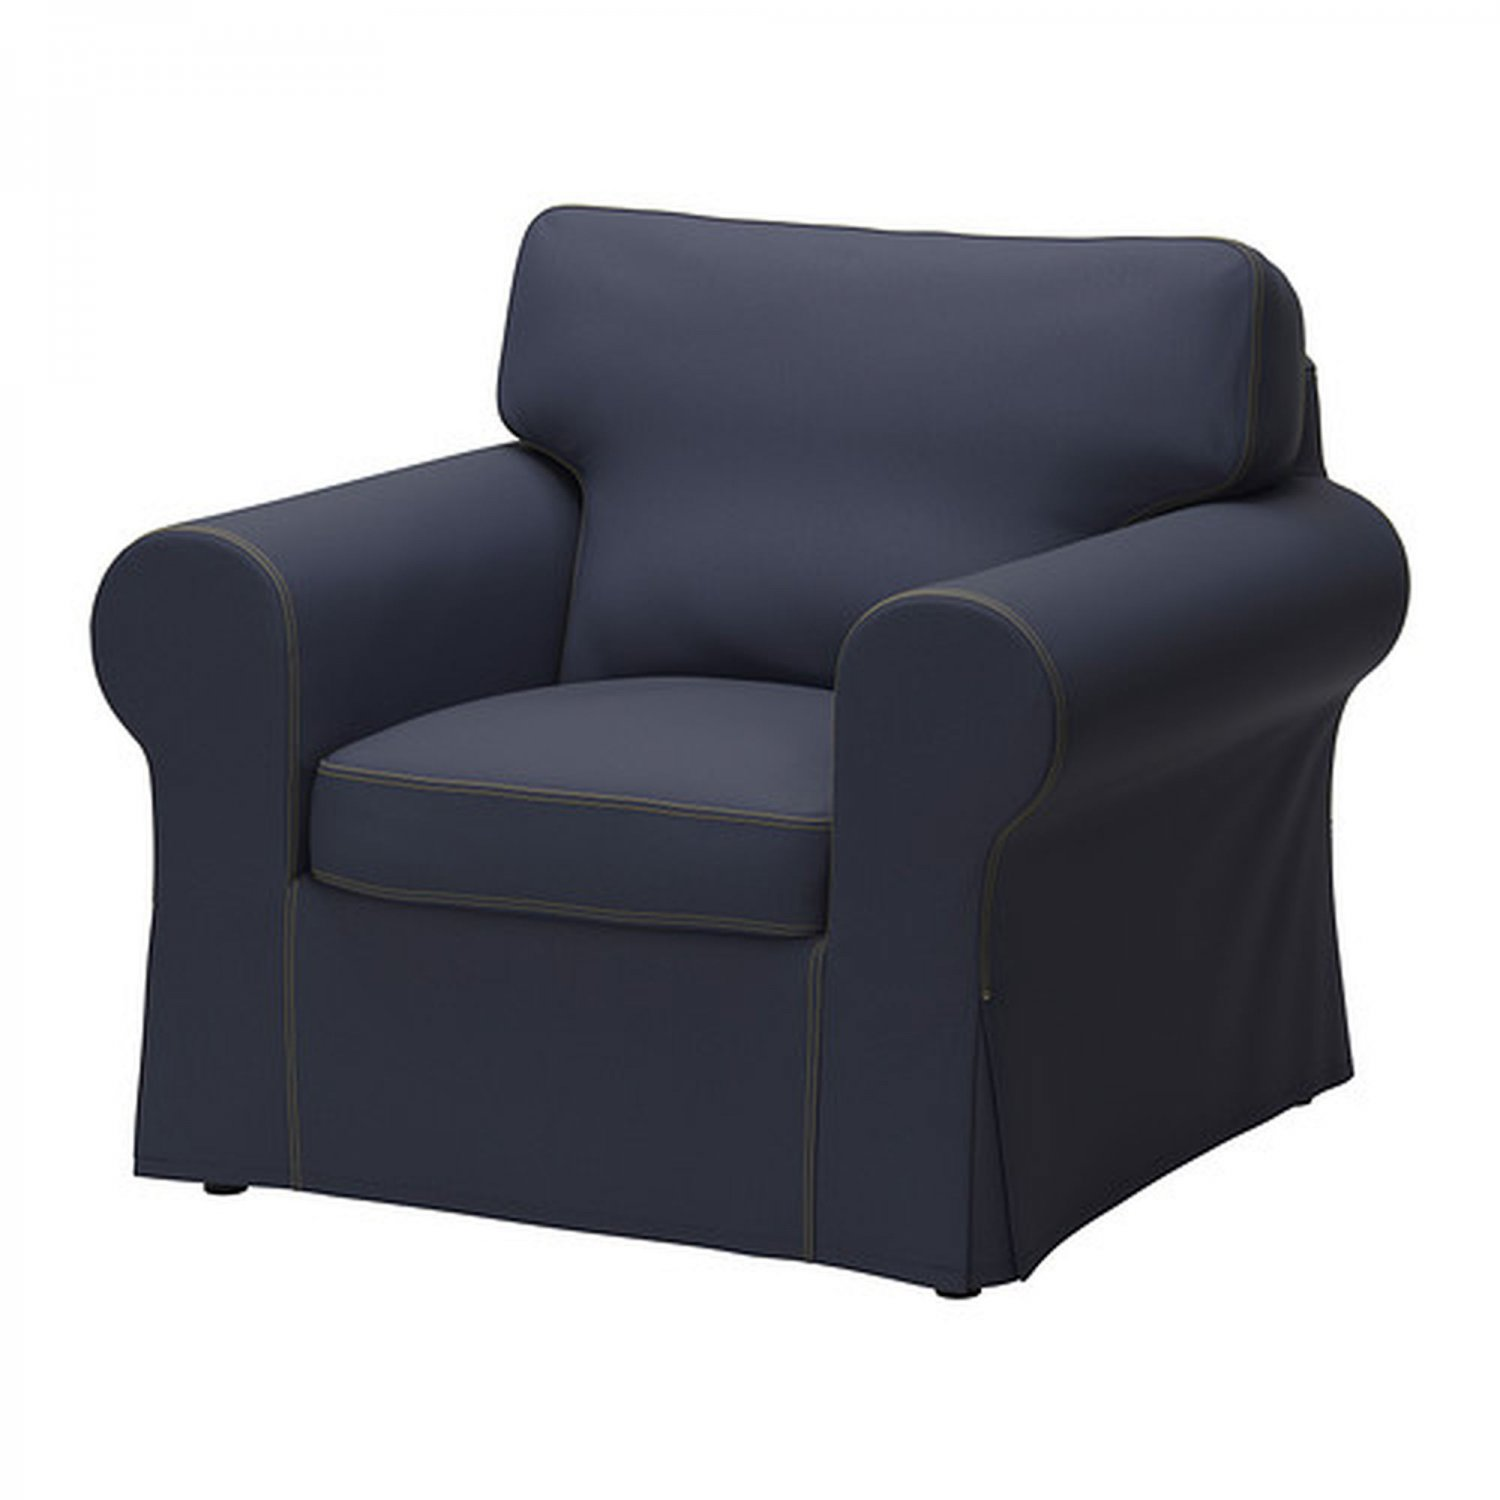 ikea jennylund chair covers uk sling chaise lounge ektorp armchair cover slipcover jonsboda blue denim